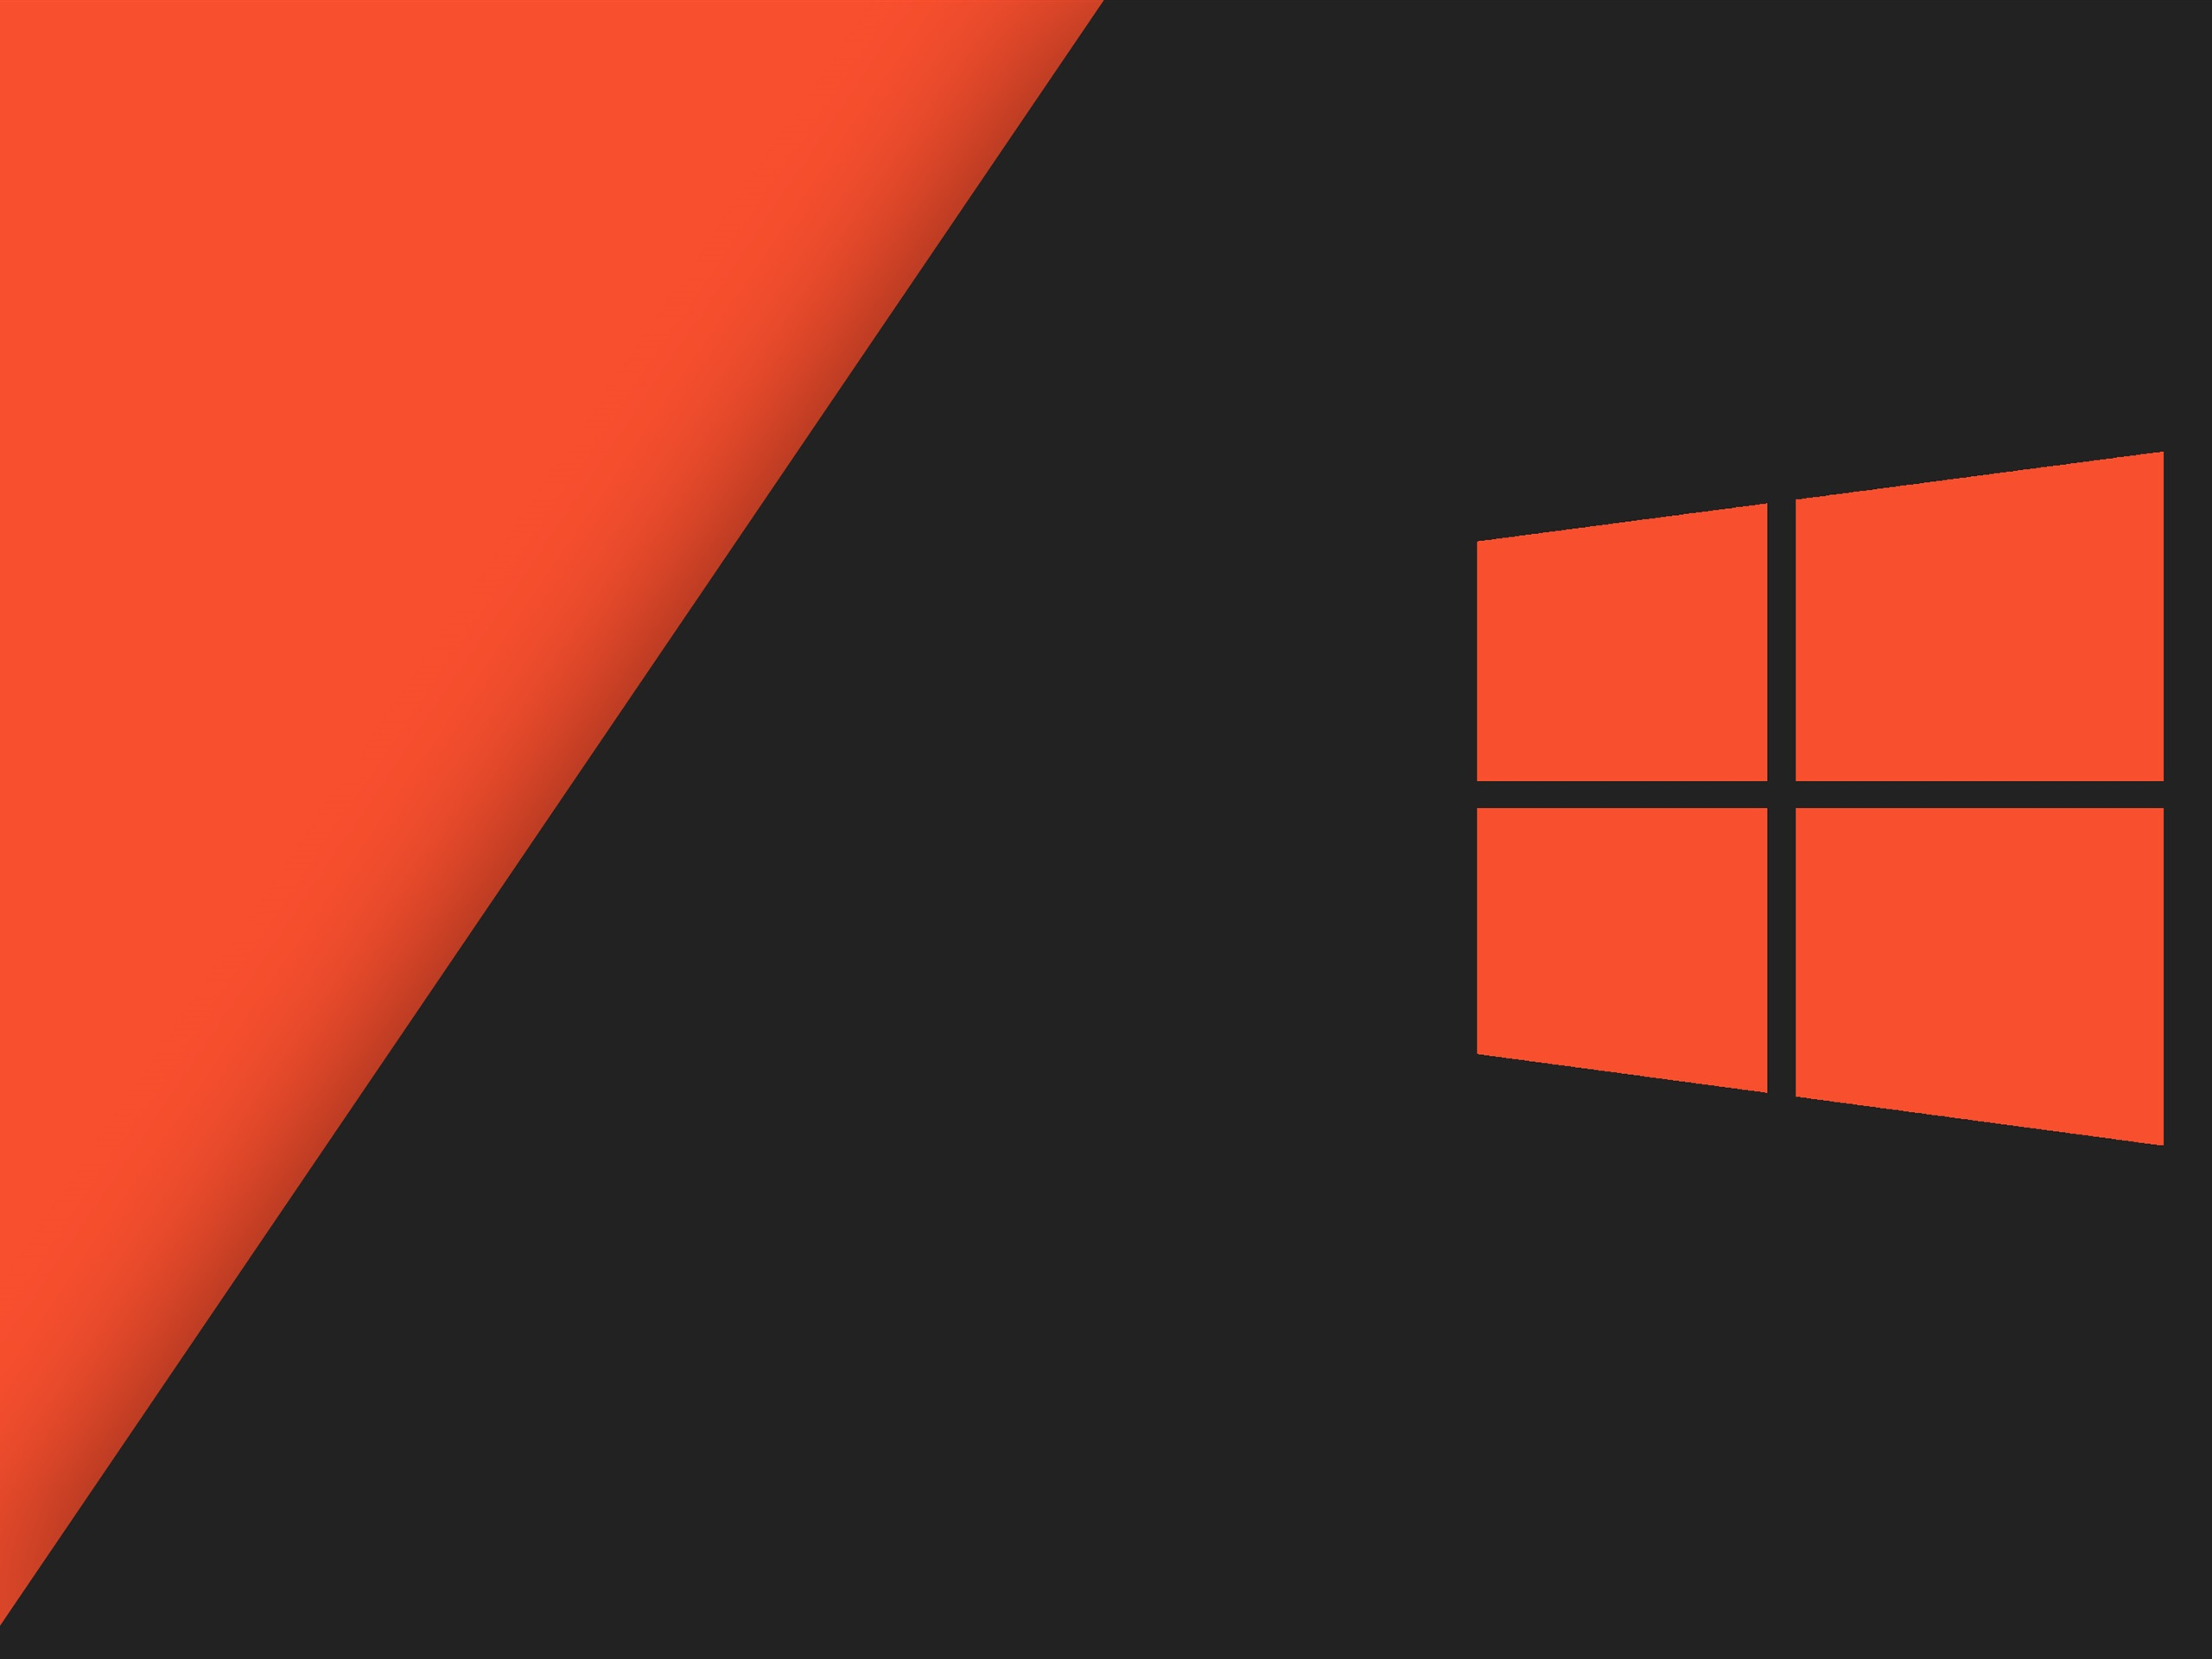 how to change picture resolution on windows 10